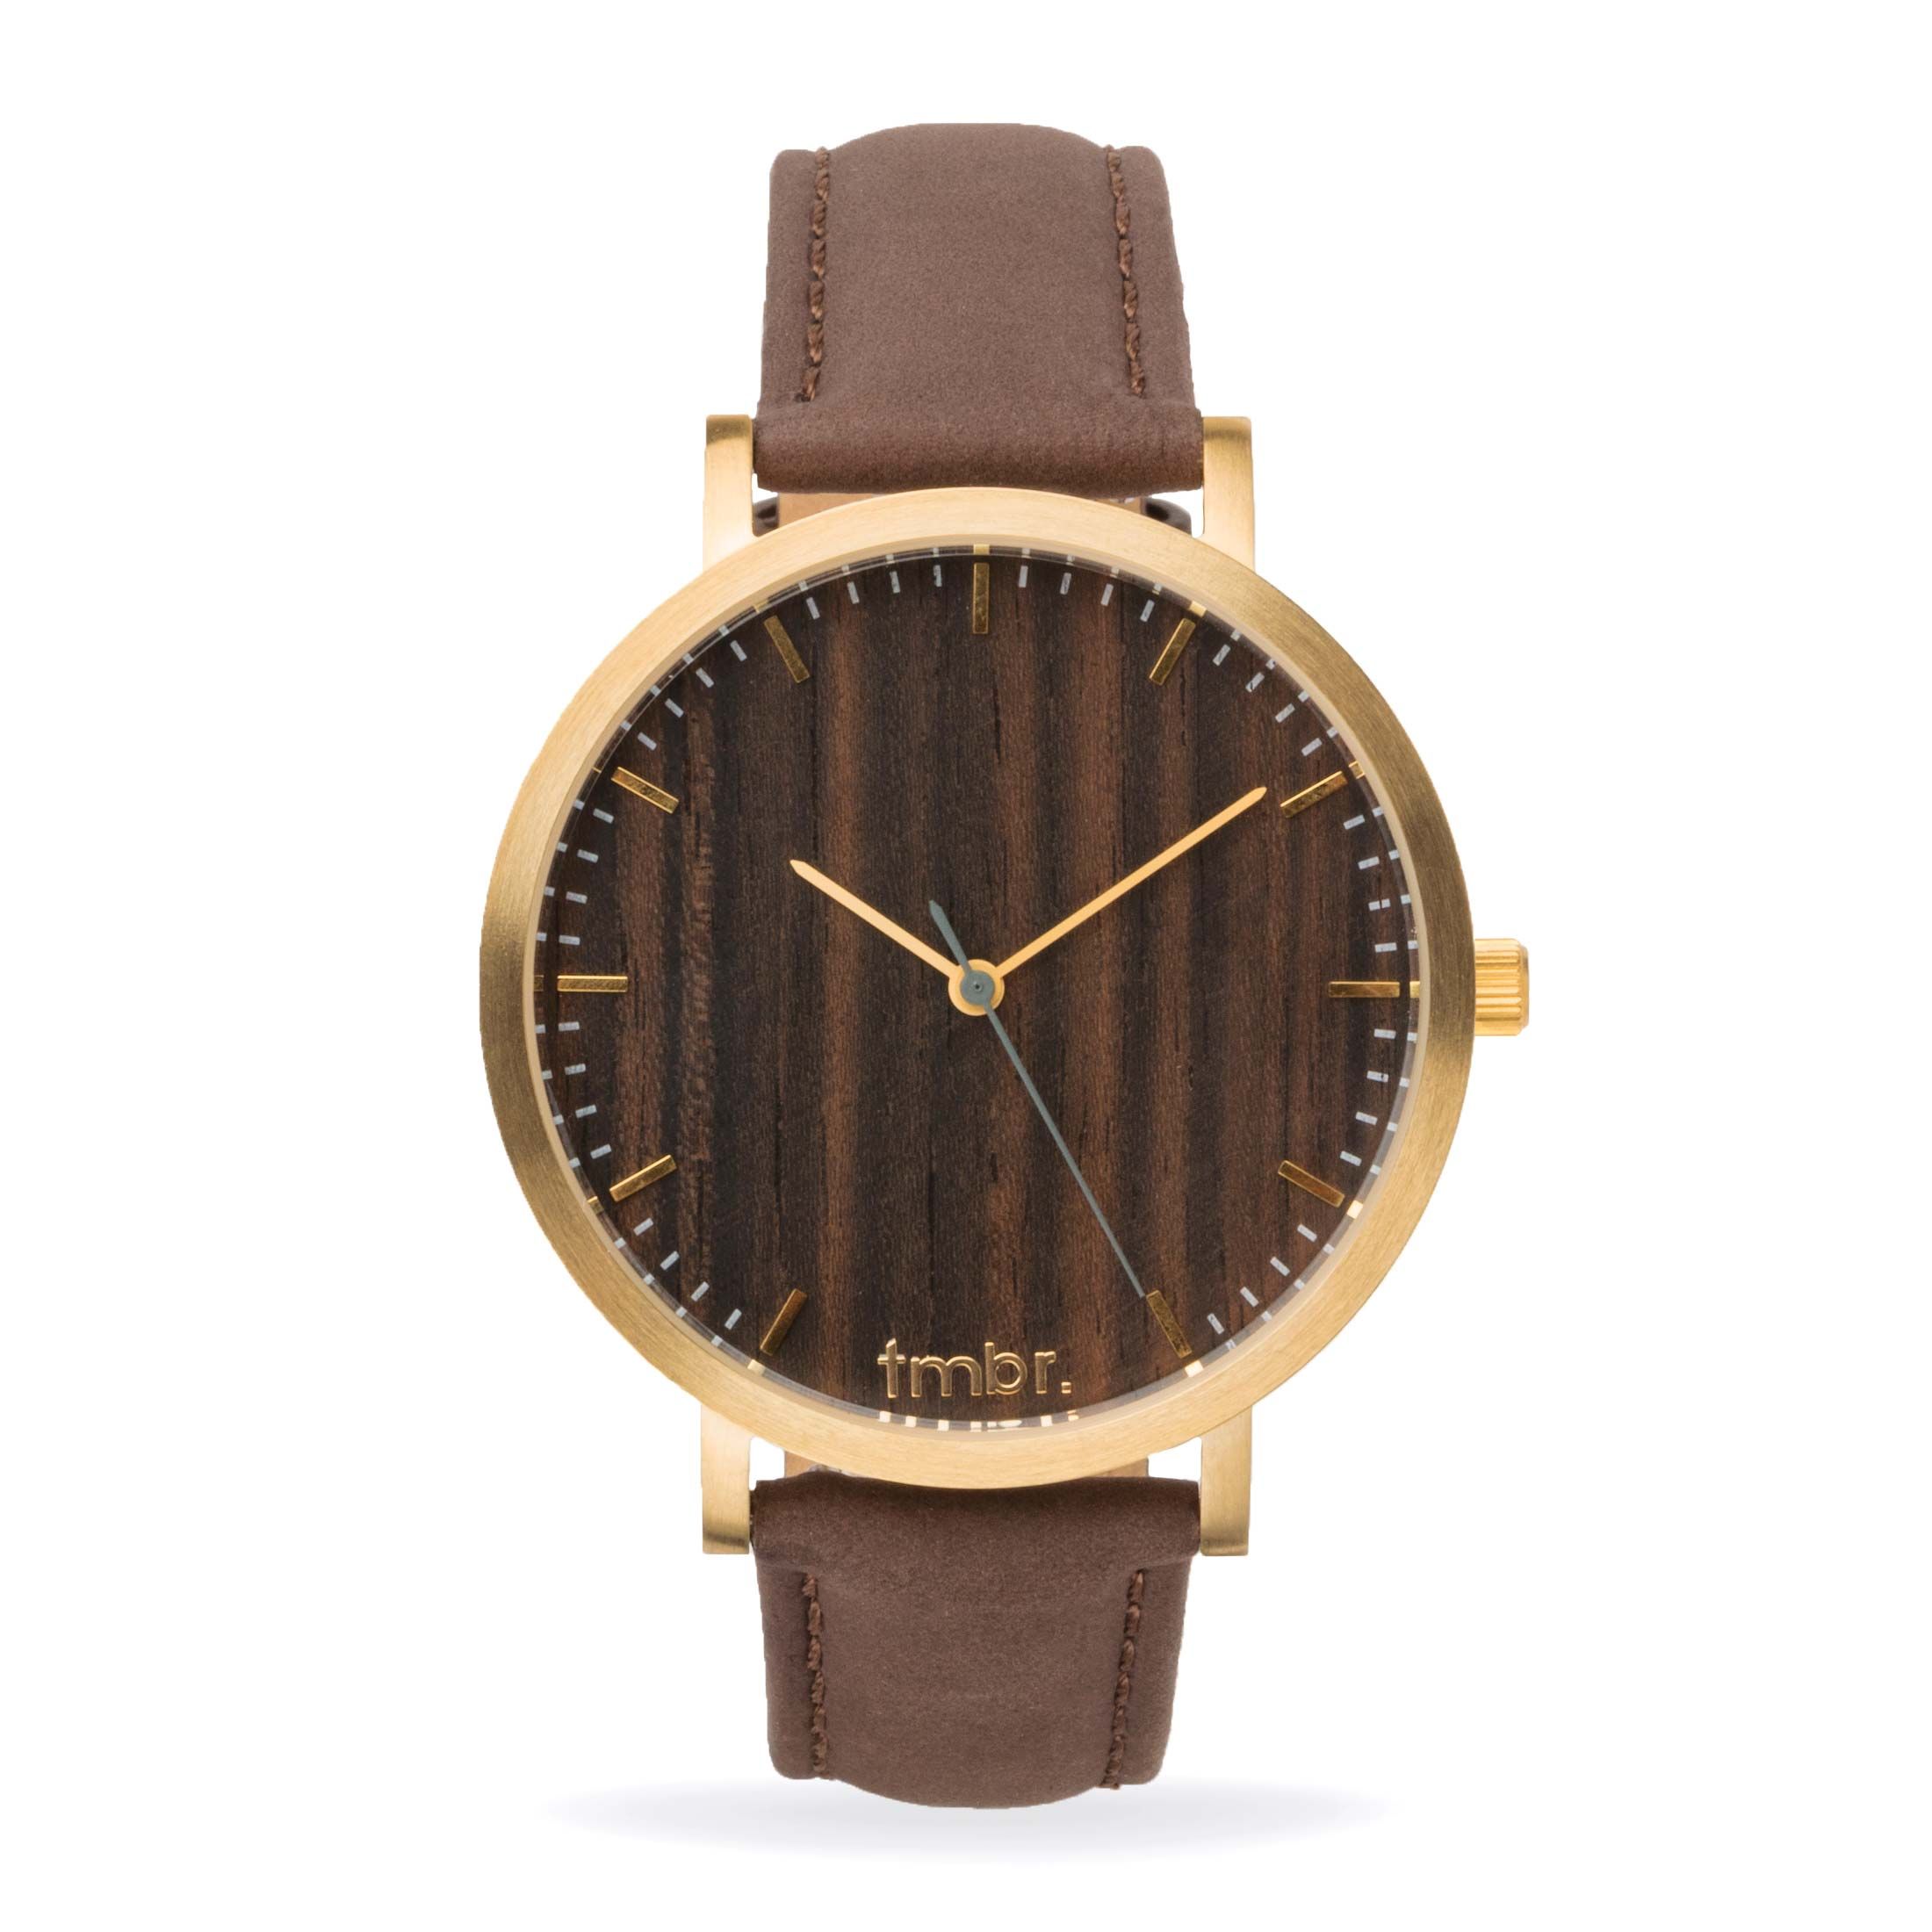 s tmbr real custom watches helm wood gold women by wooden walnut face watch